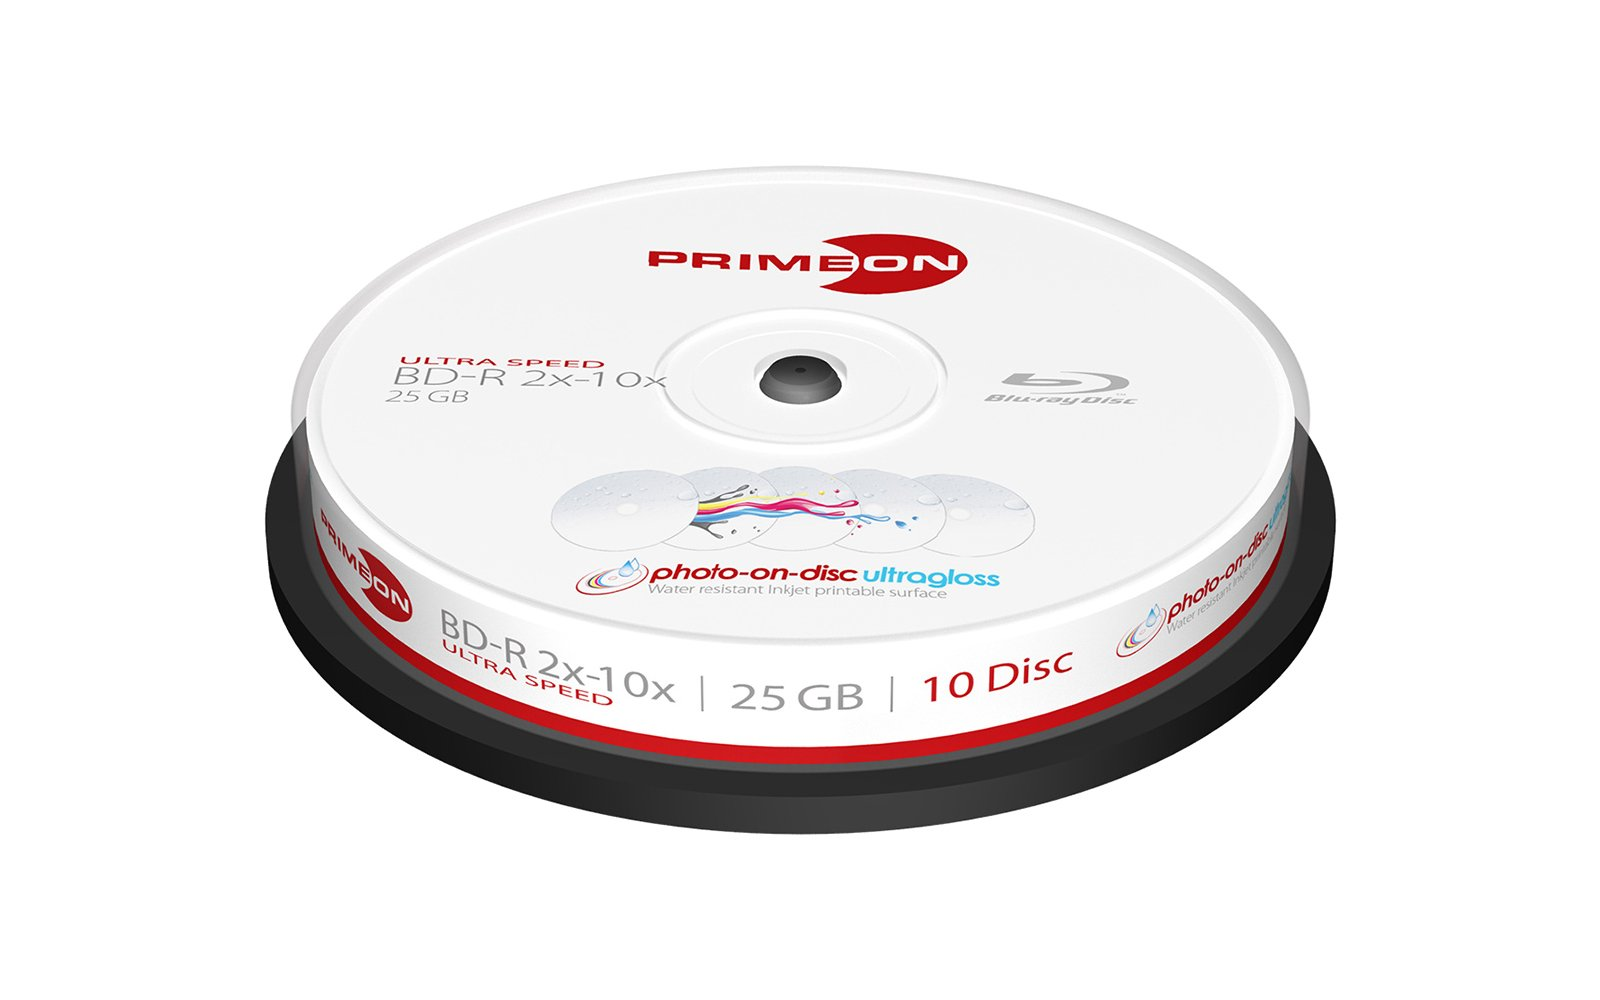 Primeon 2761316 Rohling Transparent Wei Amazon M Disc Blue Ray Bd R 25gb 4x 43823